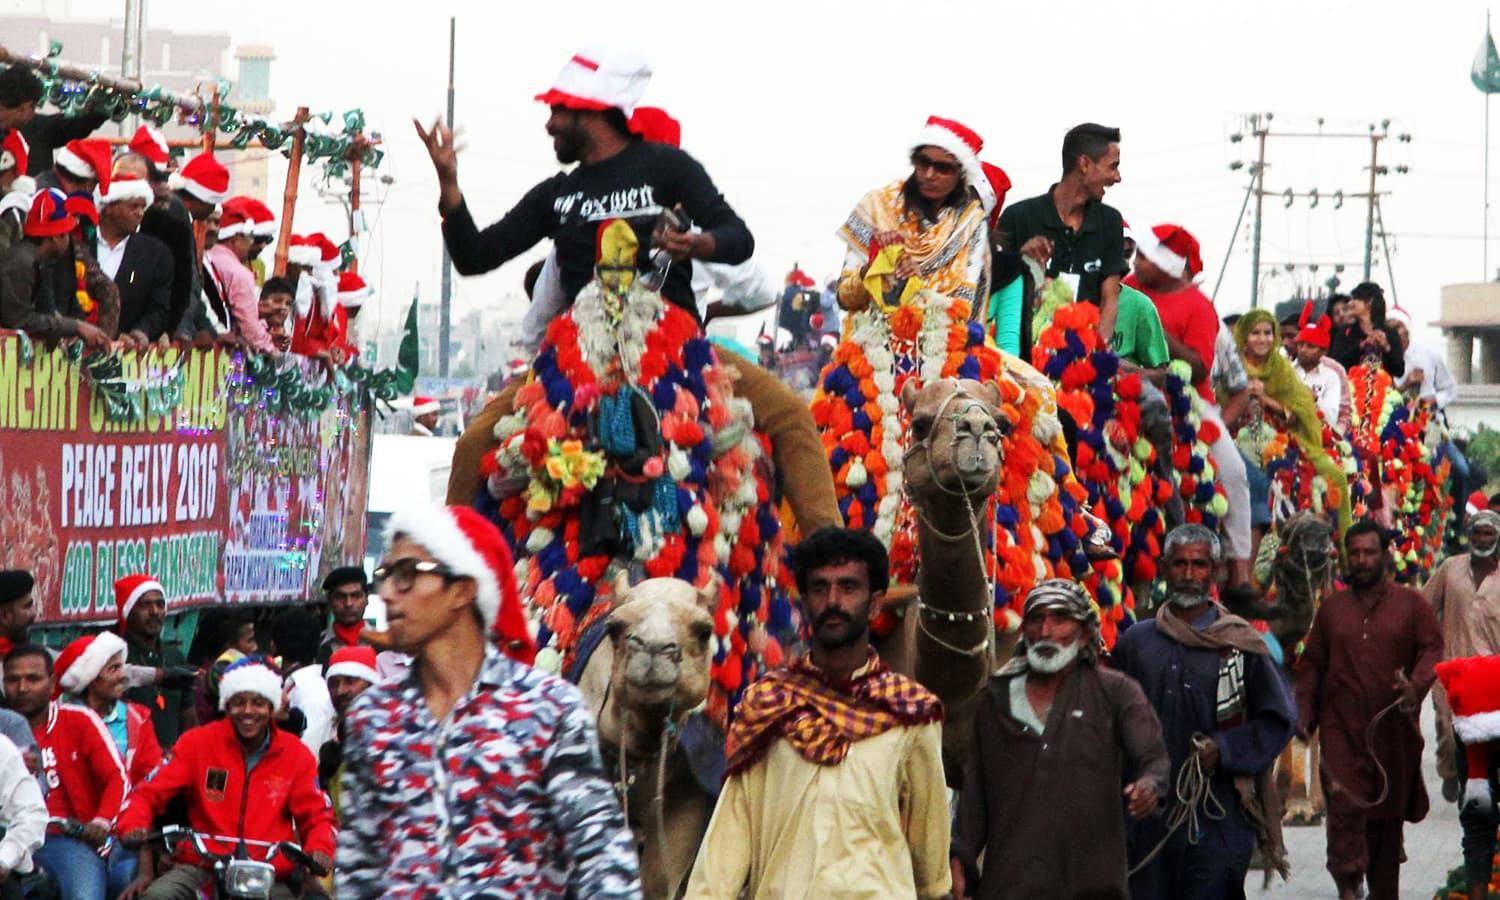 People wearing Santa hats ride camels during the rally. — PPI